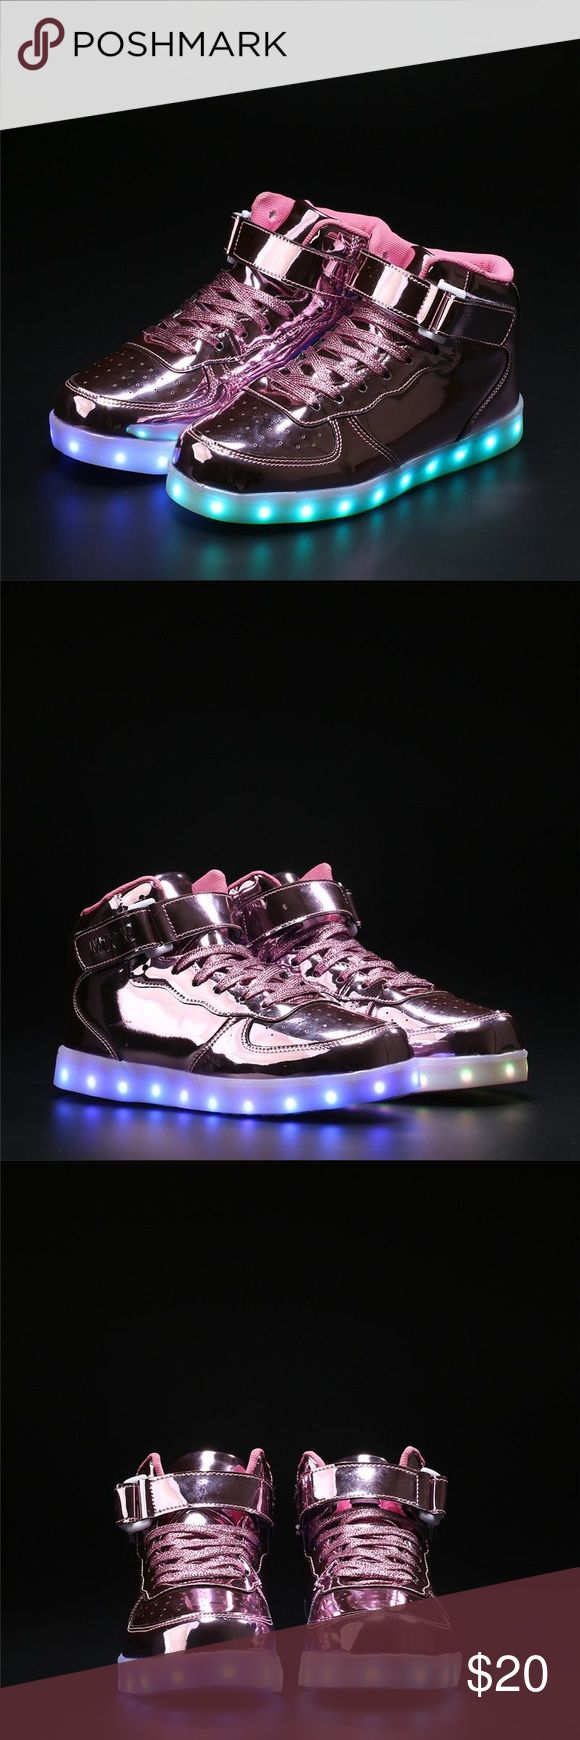 Best 25+ Led light up sneakers ideas on Pinterest | Light up shoes ...